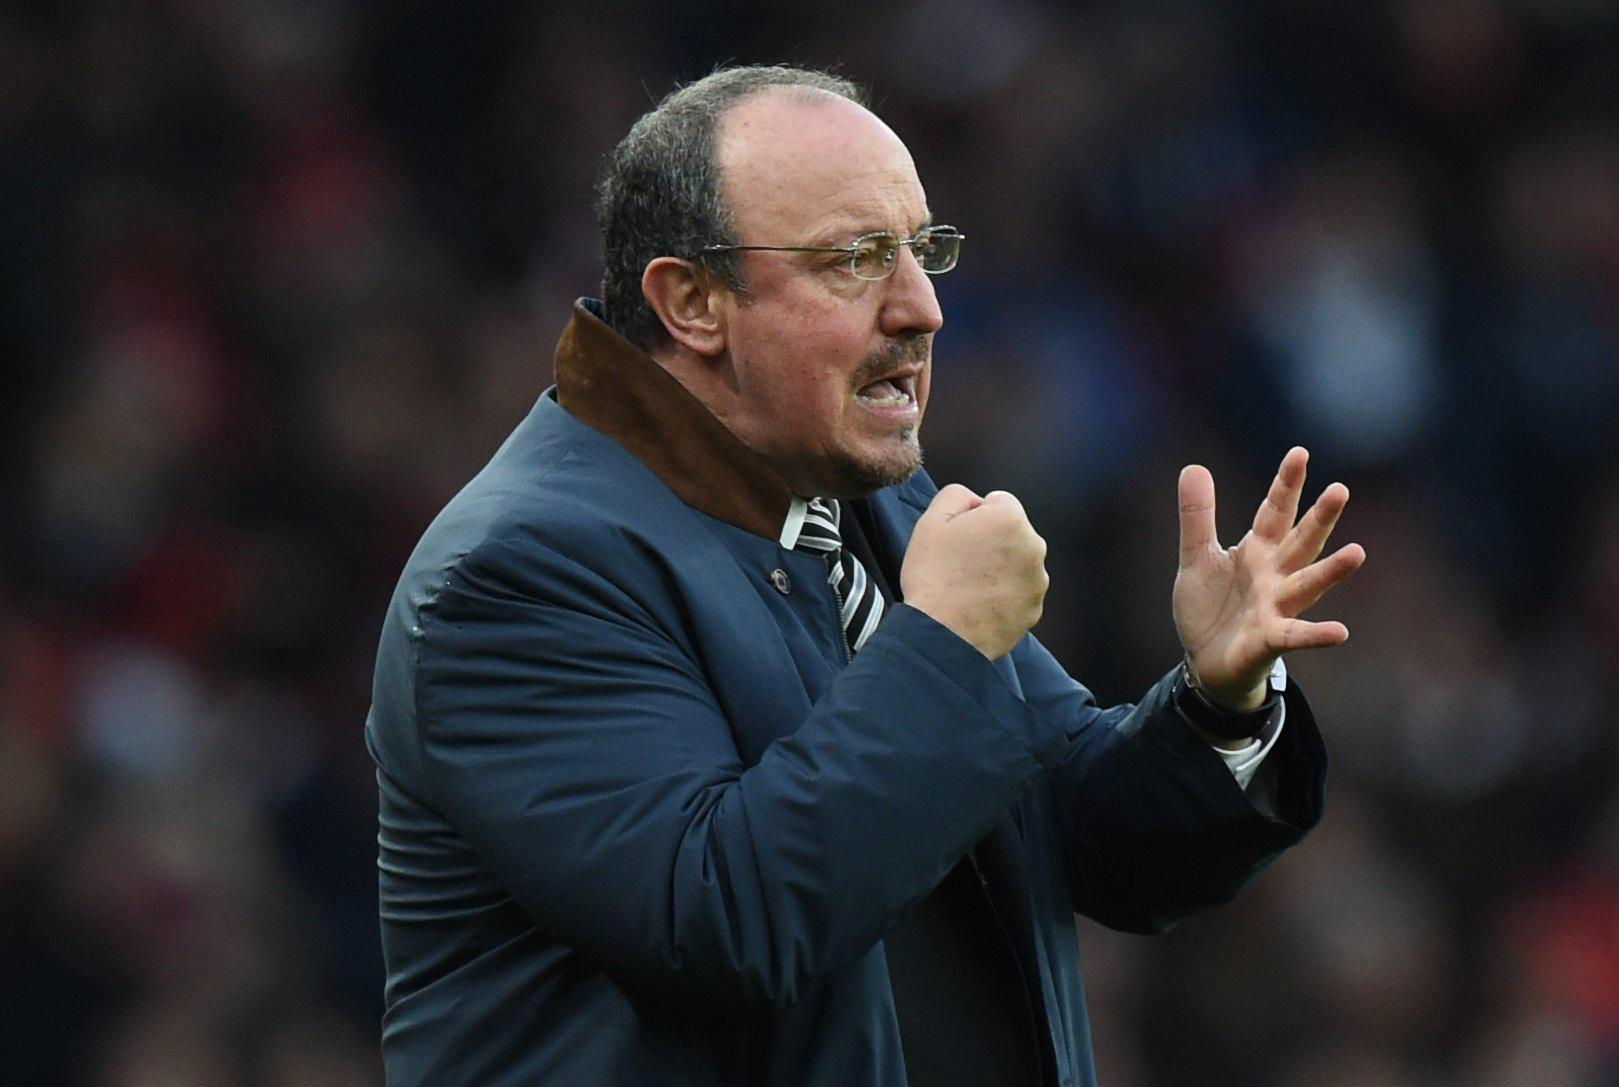 Newcastle boss Rafa Benitez to beg owner Mike Ashley for January transfer funds as Amanda Staveley investor pulls out of takeover